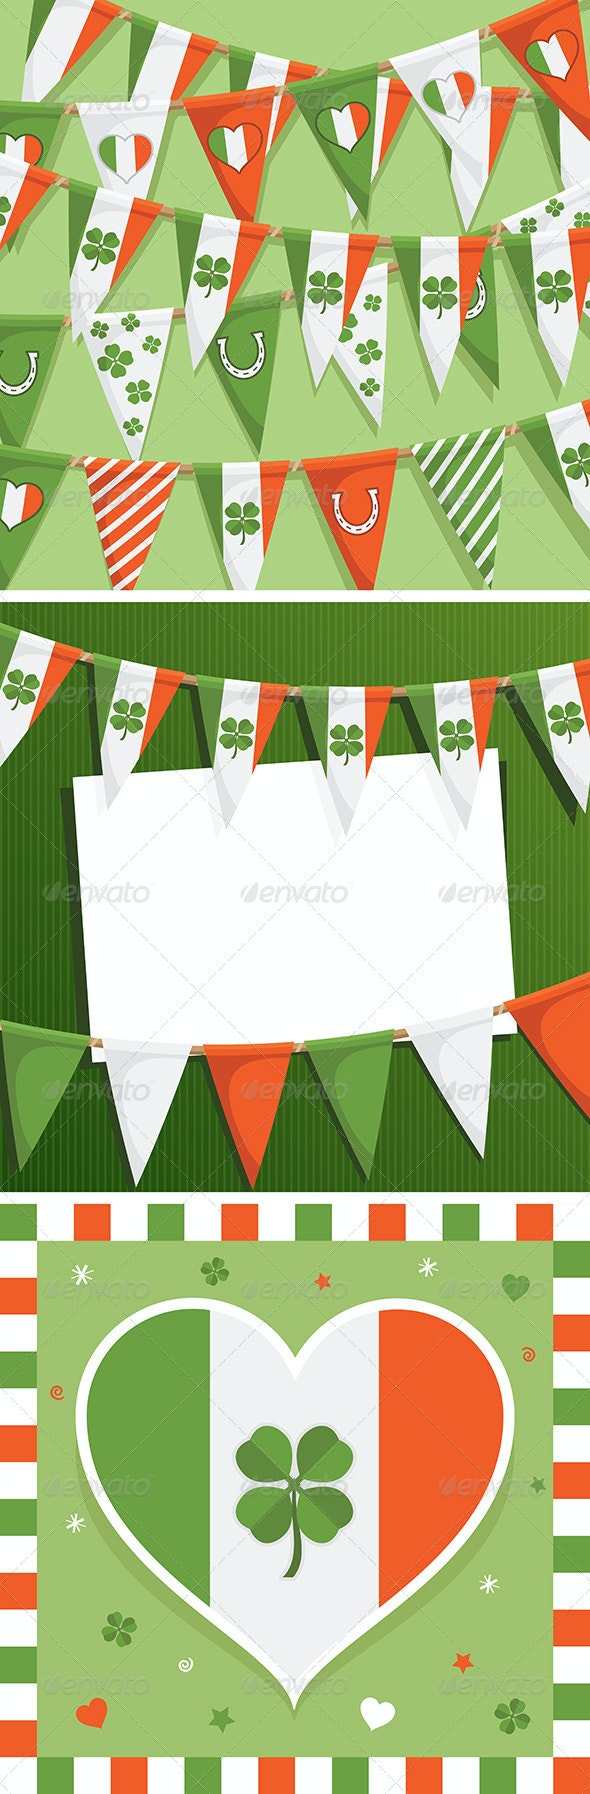 St Patricks Day Decorations - Backgrounds Decorative